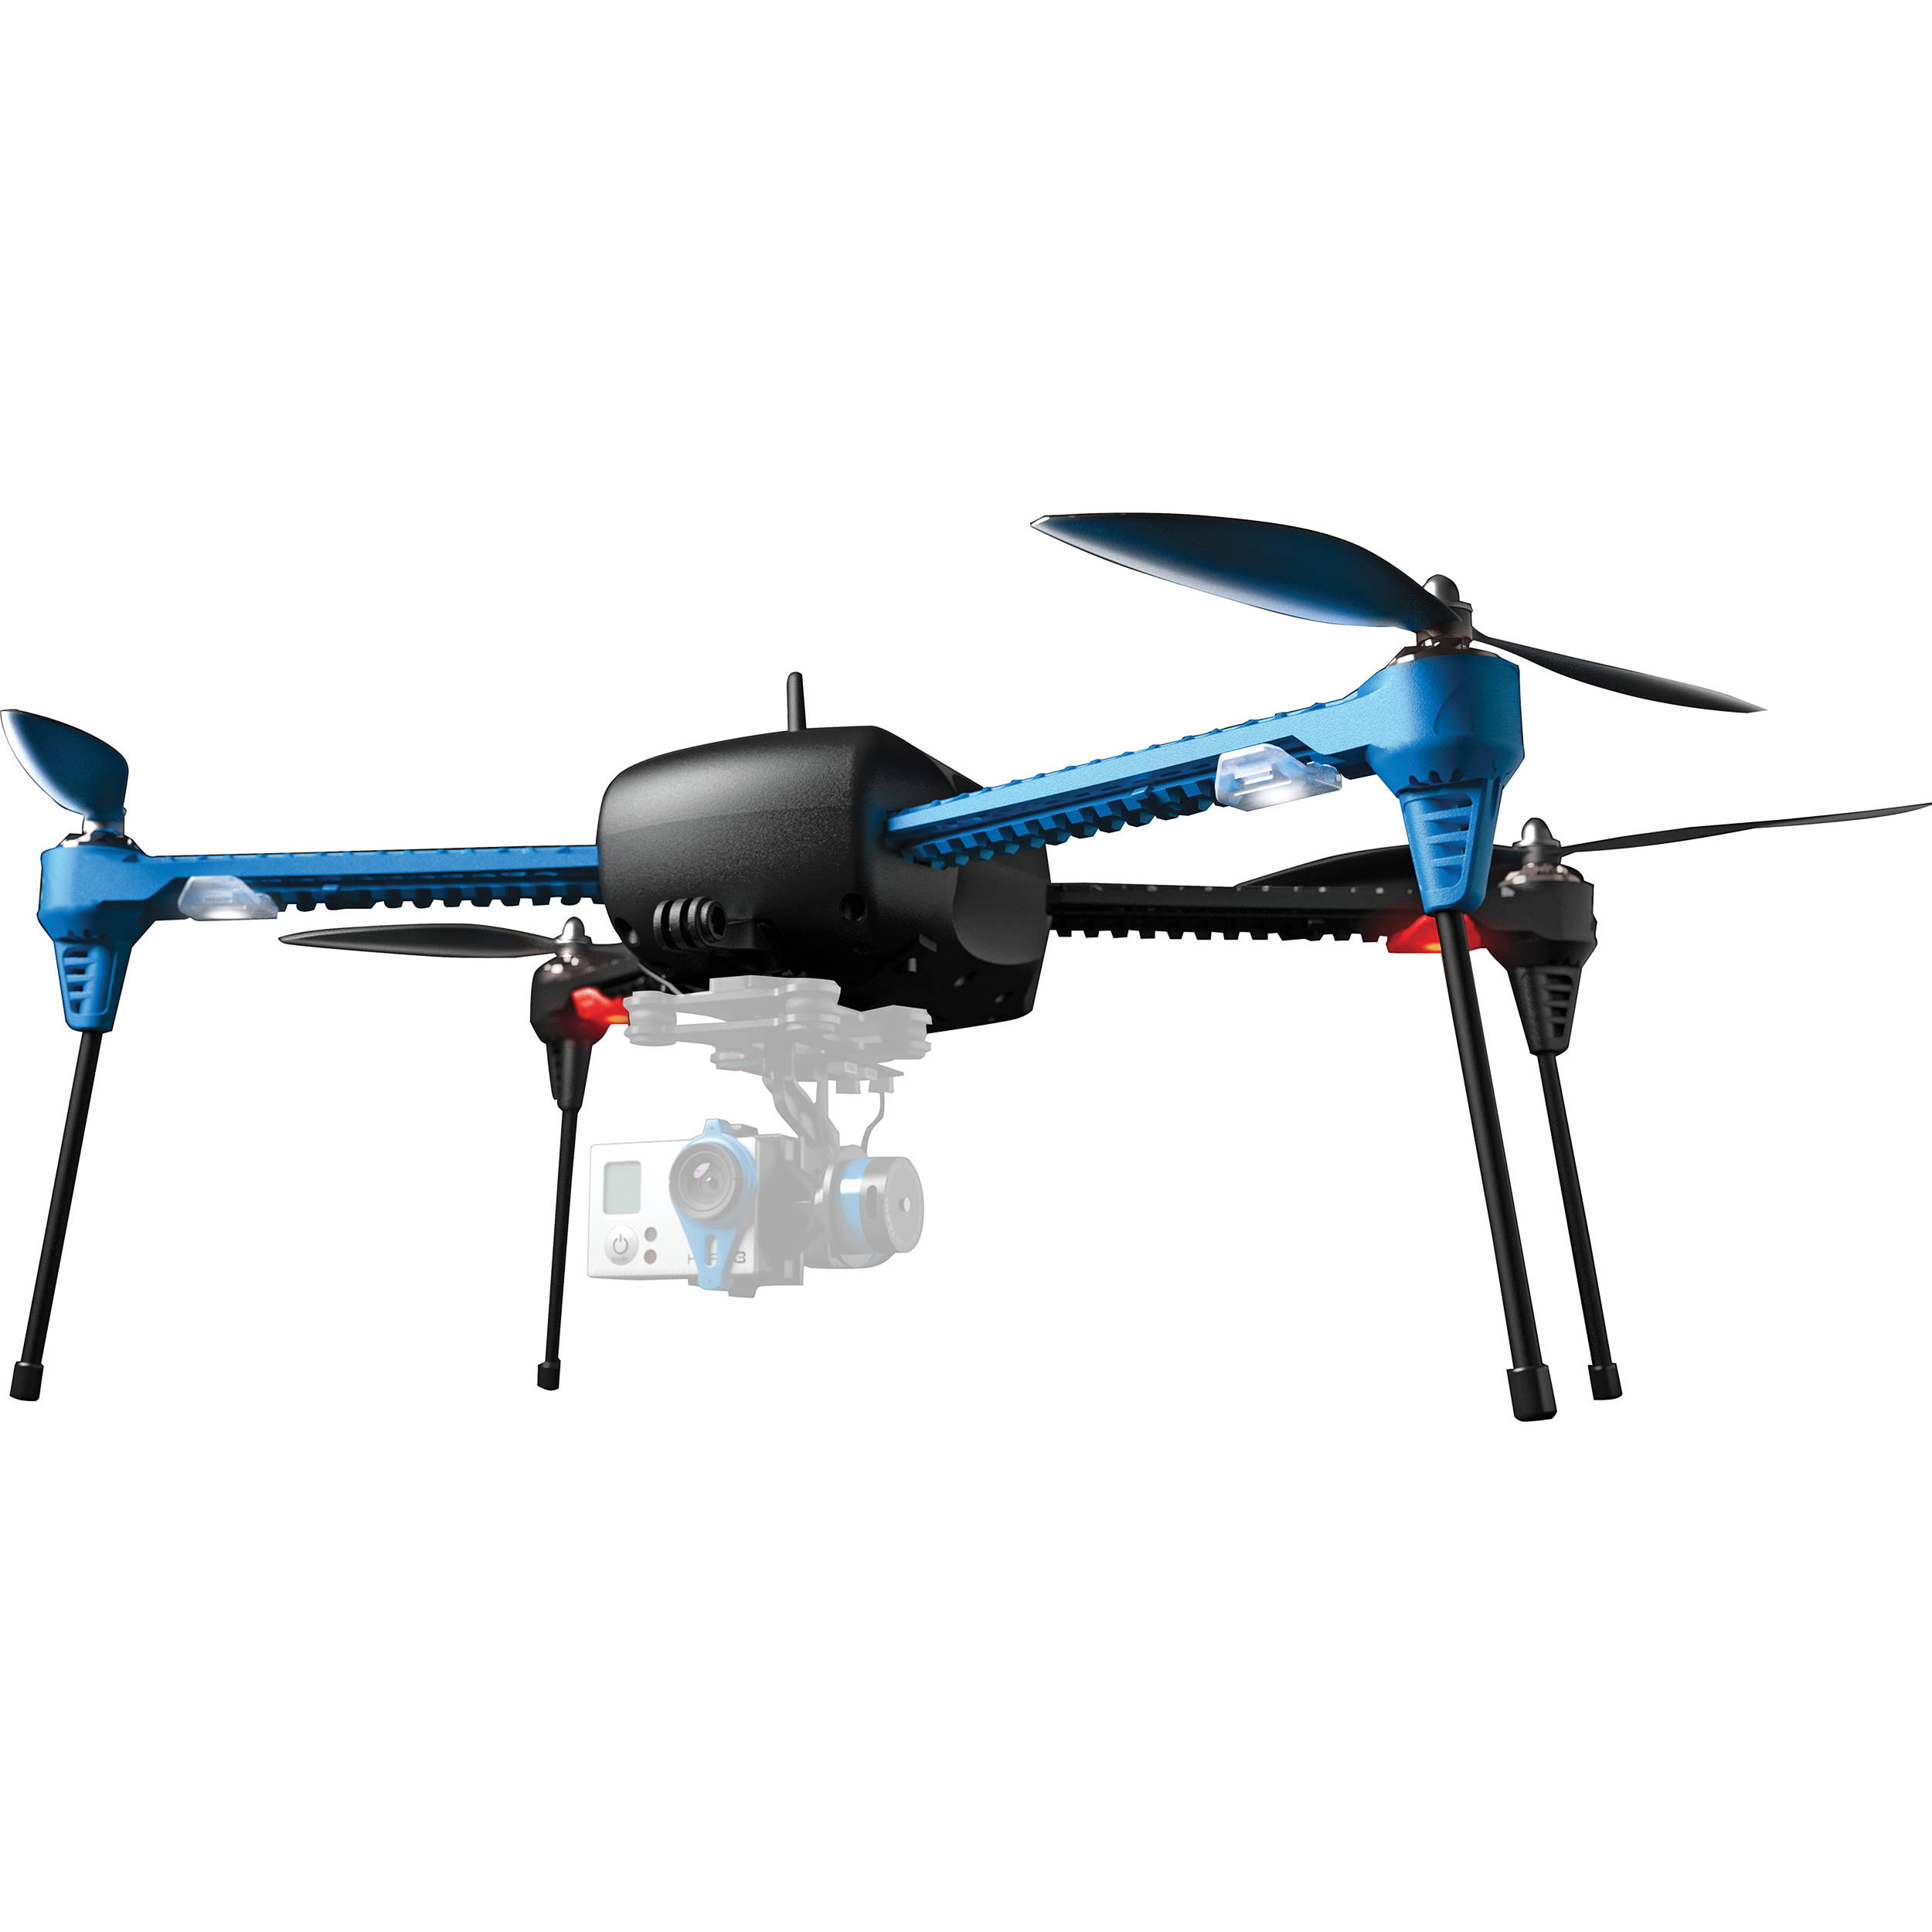 3dr Iris Quadcopter With Gopro Mount 915 Mhz Rtf 3dr0171 Bh Gimbal Wiring Diagram